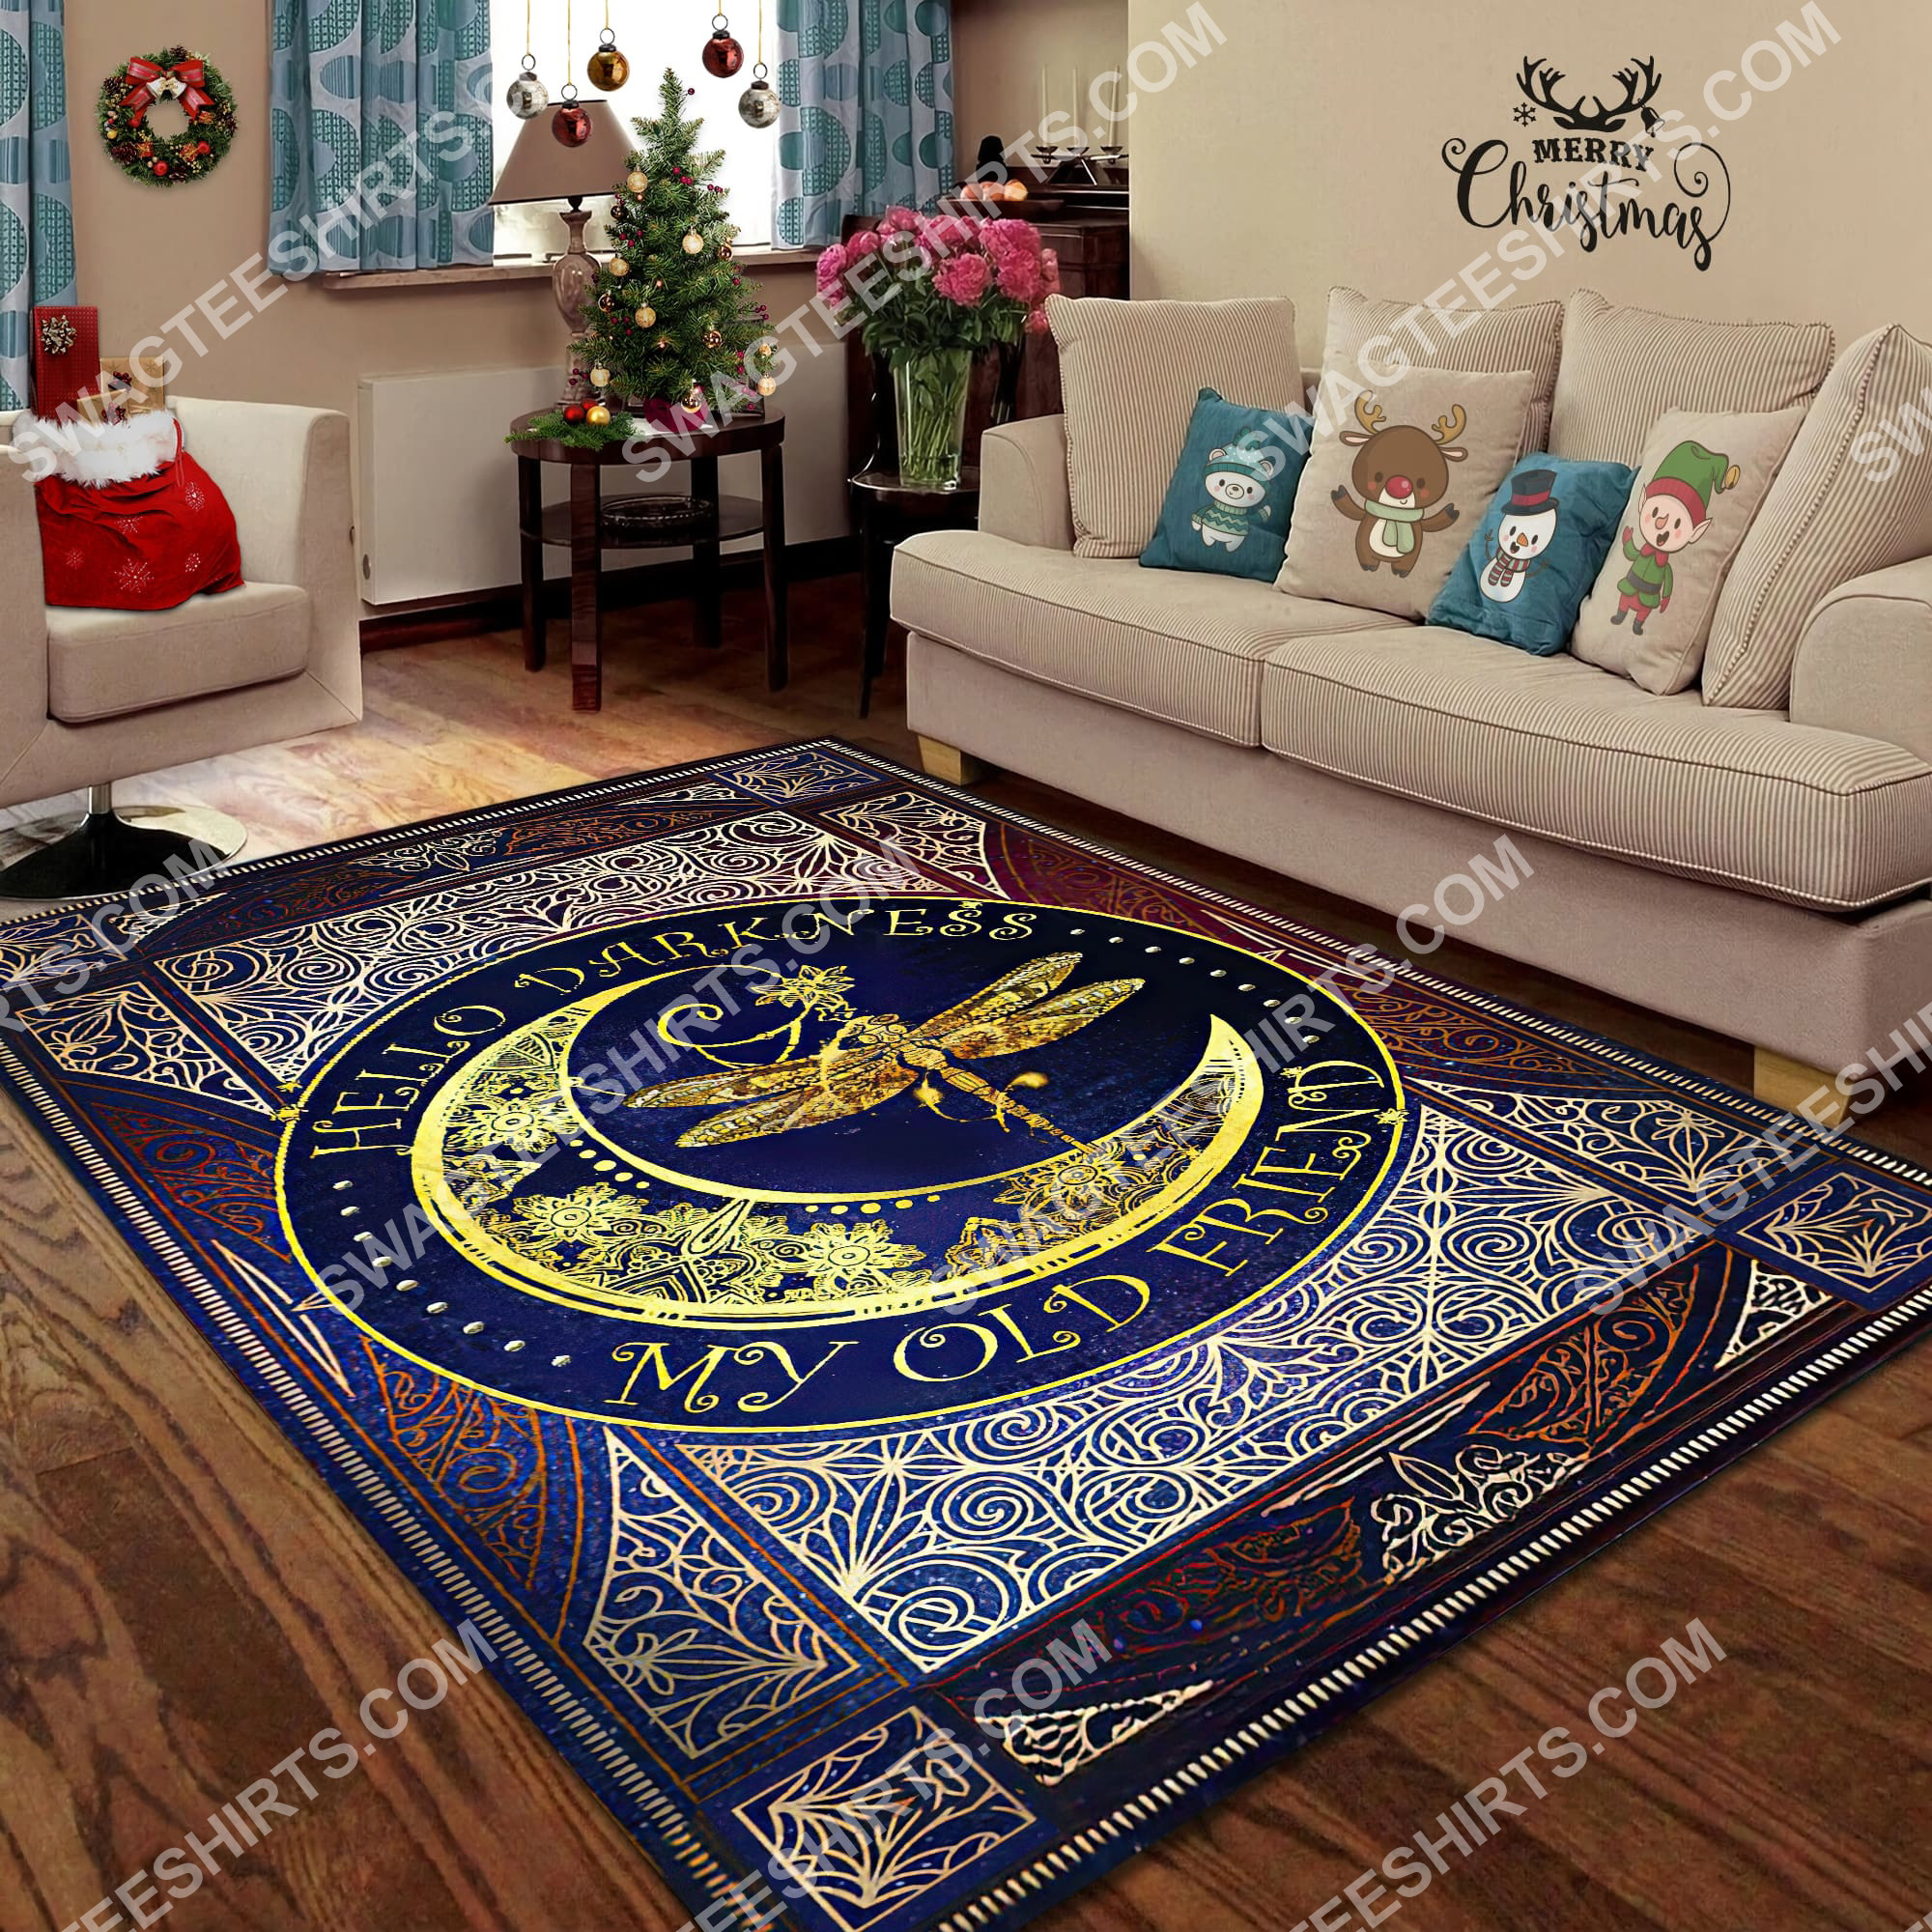 vintage dragonfly sun and moon wicca all over printed rug 4(1)